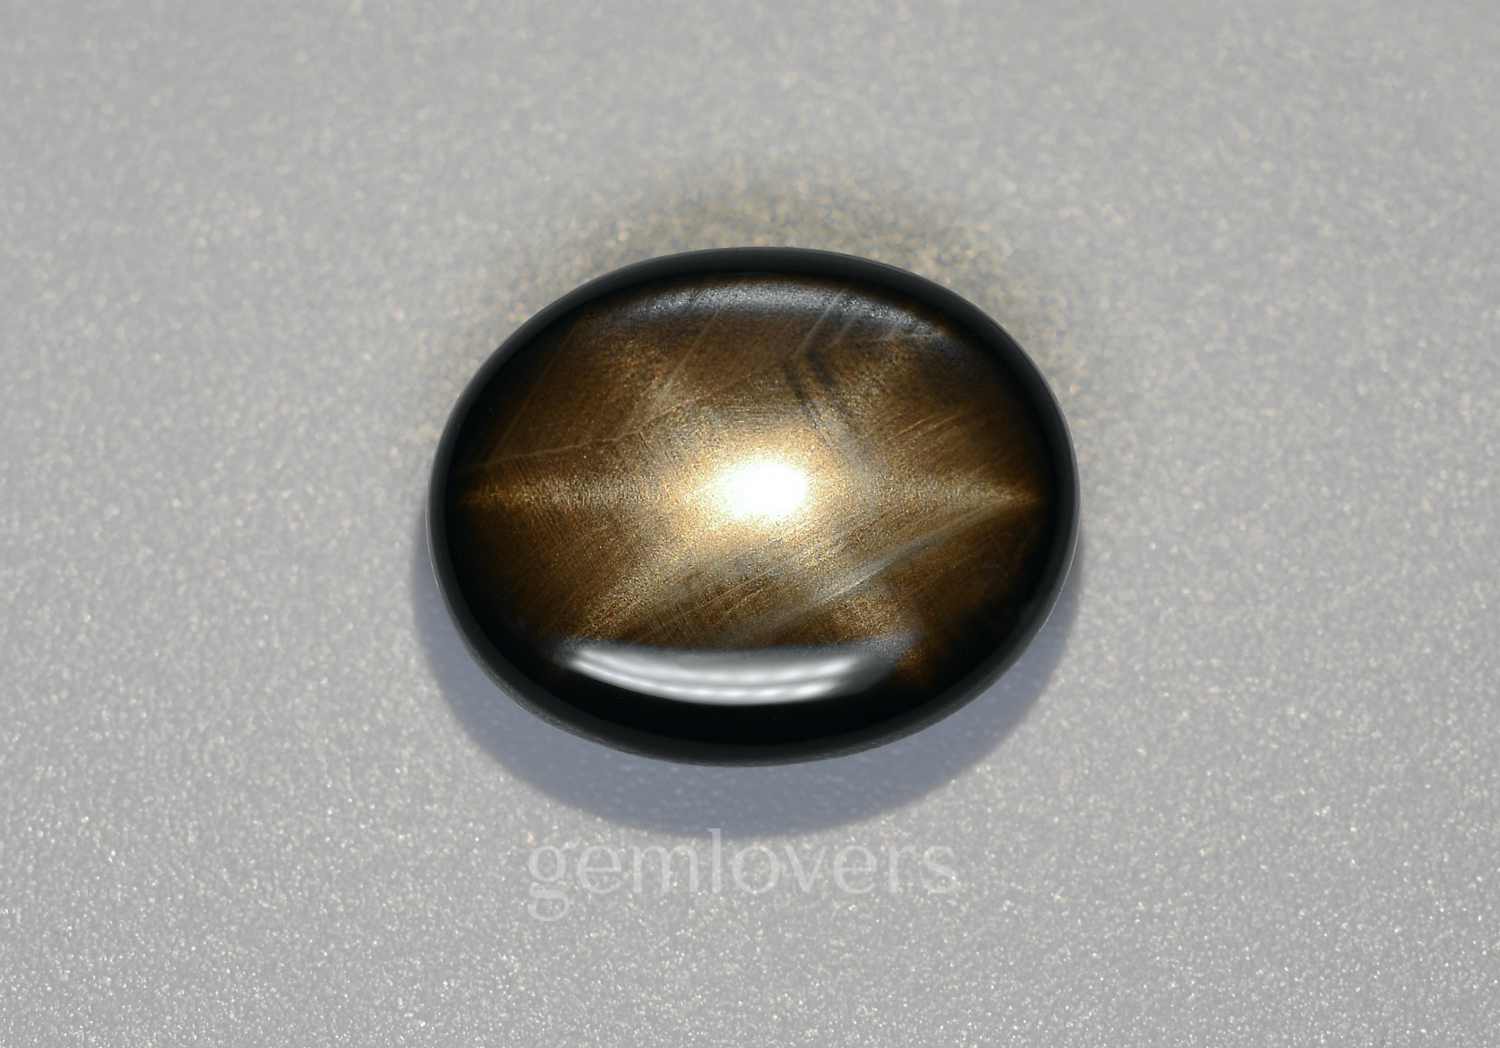 Black sapphire with a star